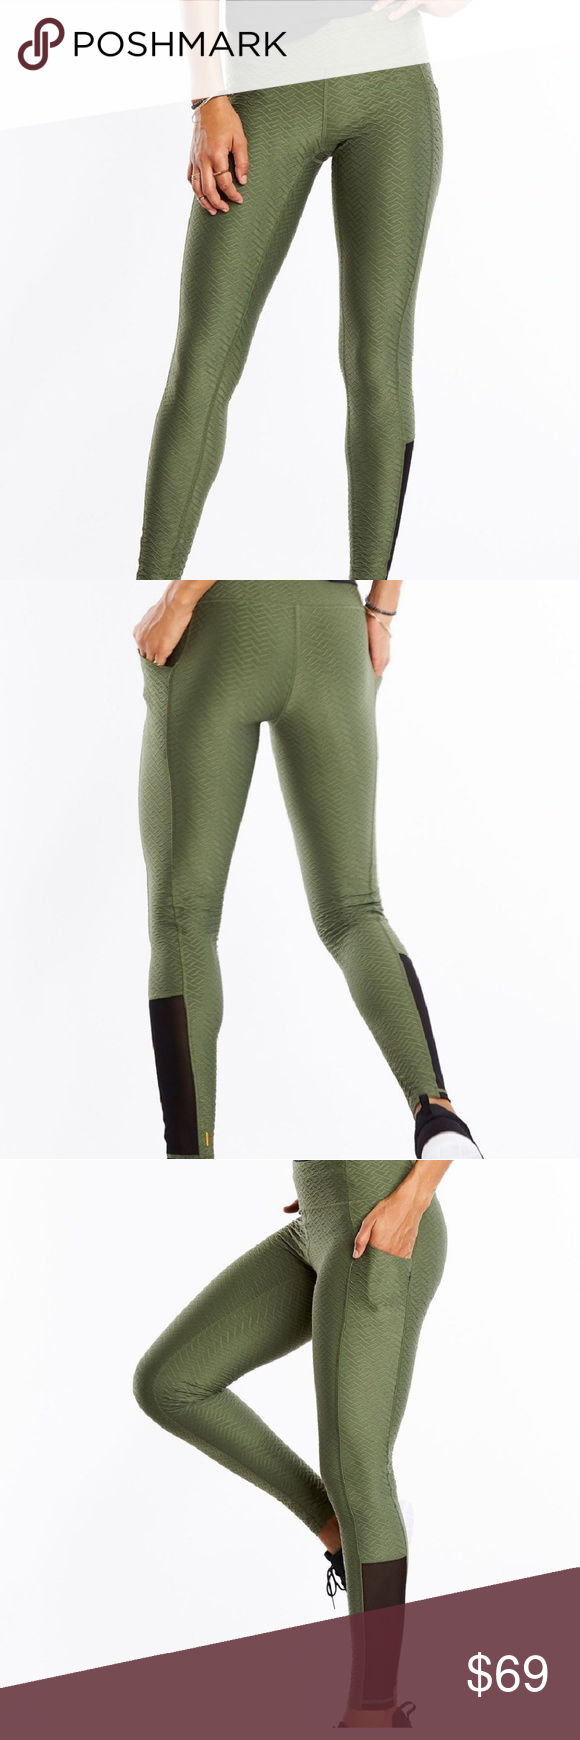 f29522a749c8ca NWT Lucy No Excuses Jacquard Leggings NWT Lucy